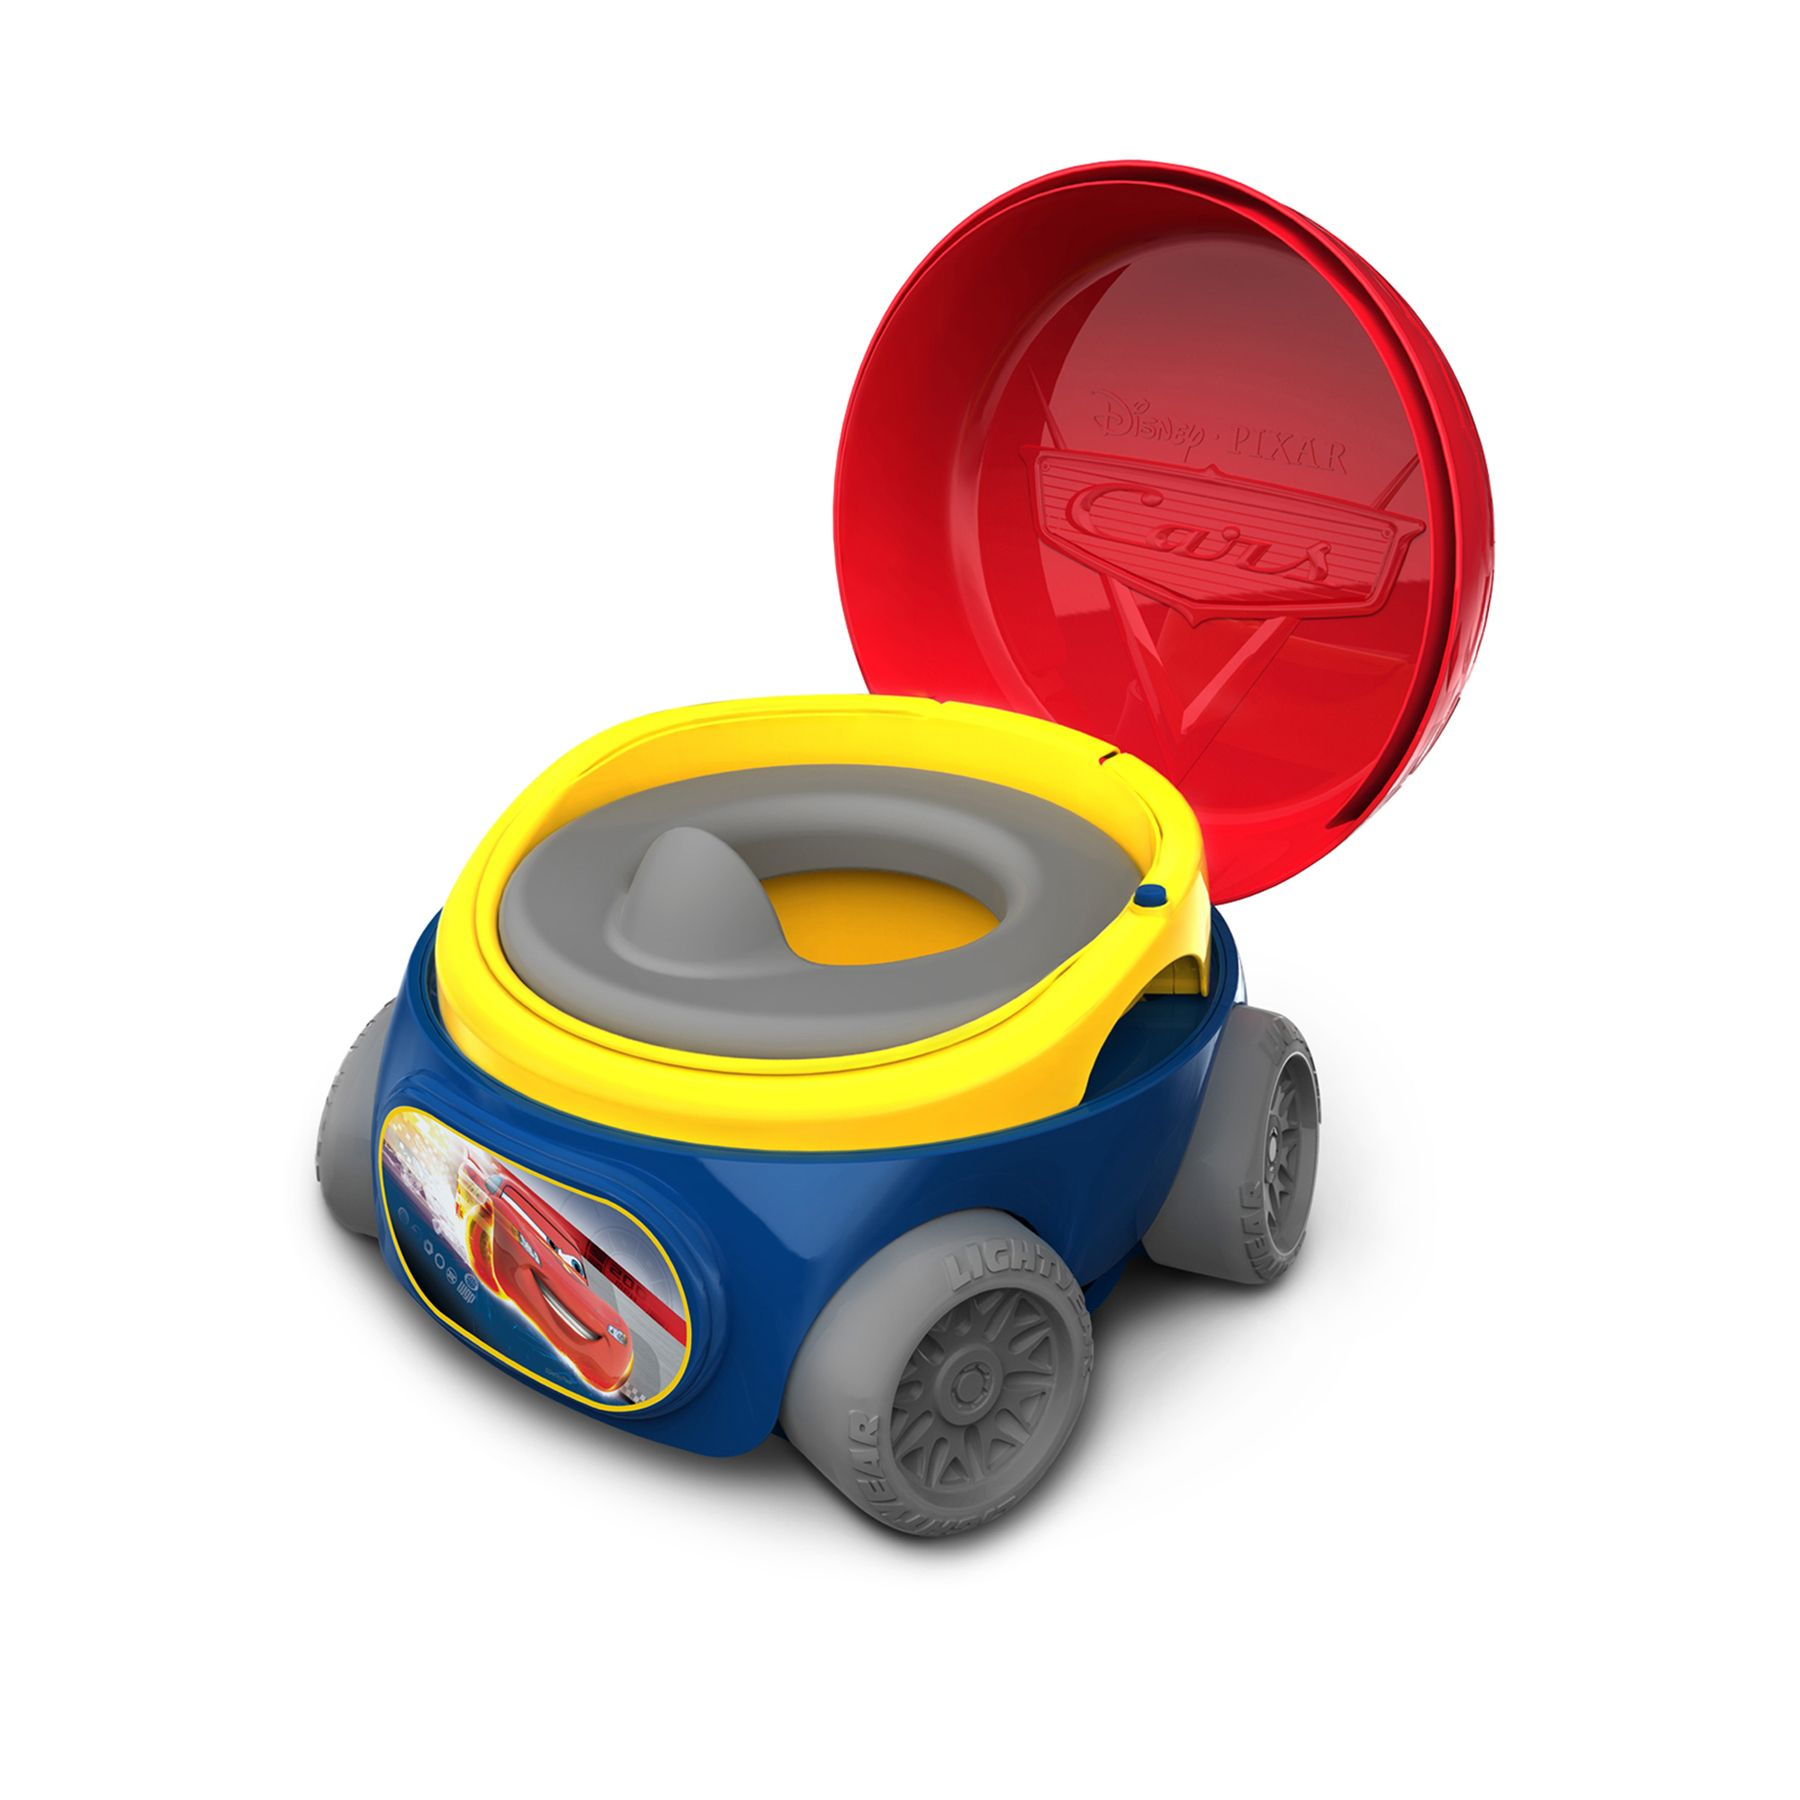 take a necessary pit stop in potty training circuit the cars racing mission potty system makes toilet training easier and less intimidating for your